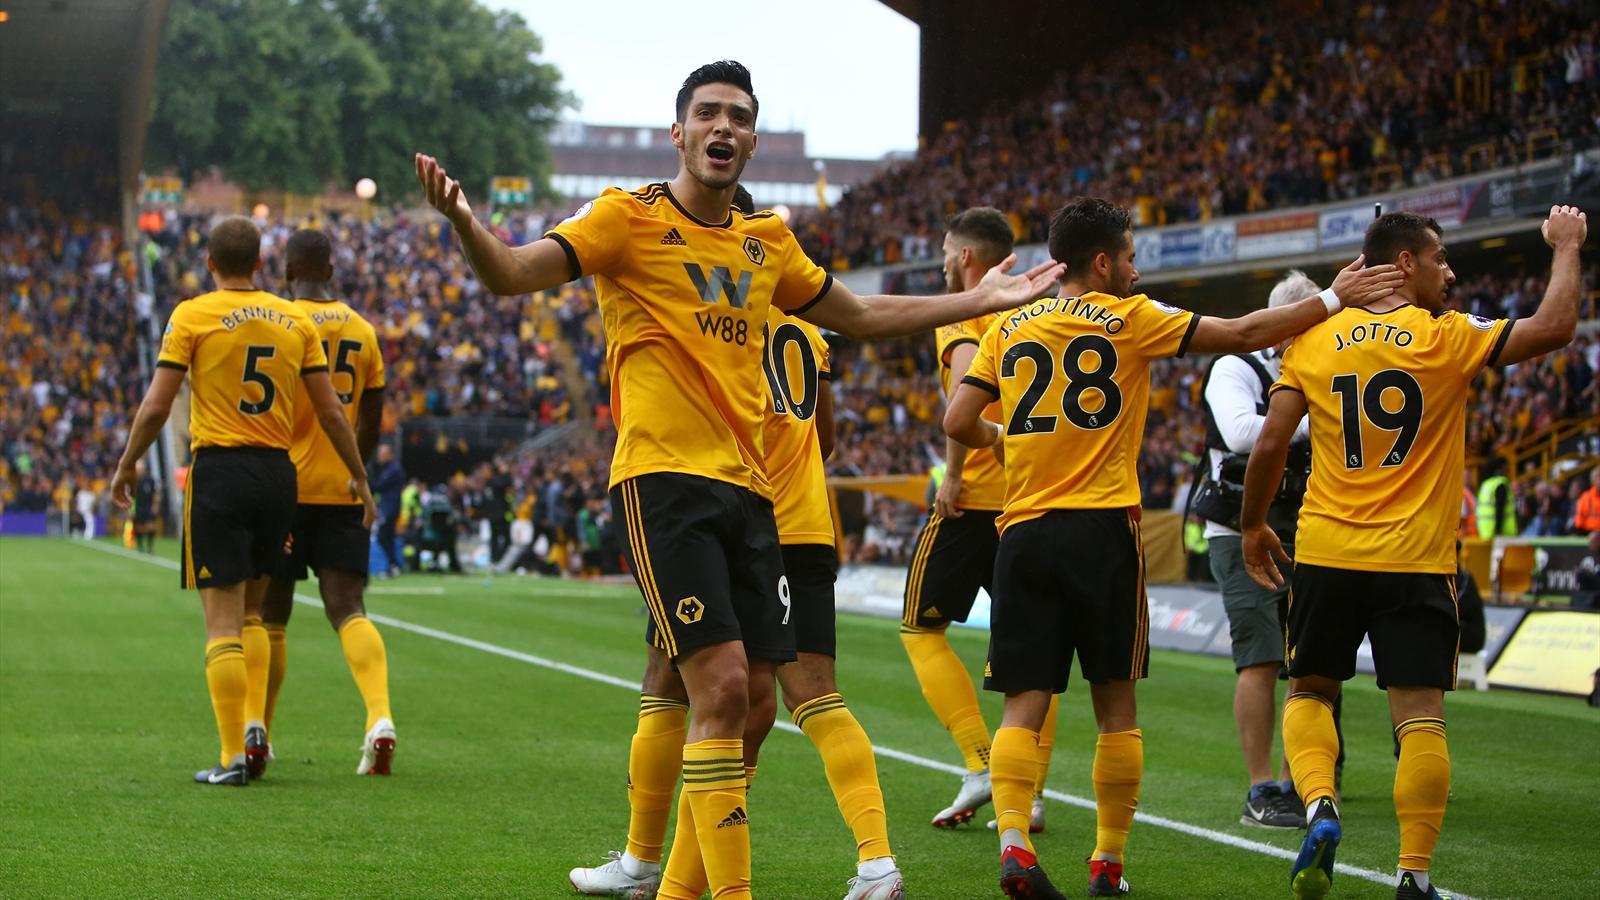 Wolves snatch draw from 10-man Everton - Premier League ...